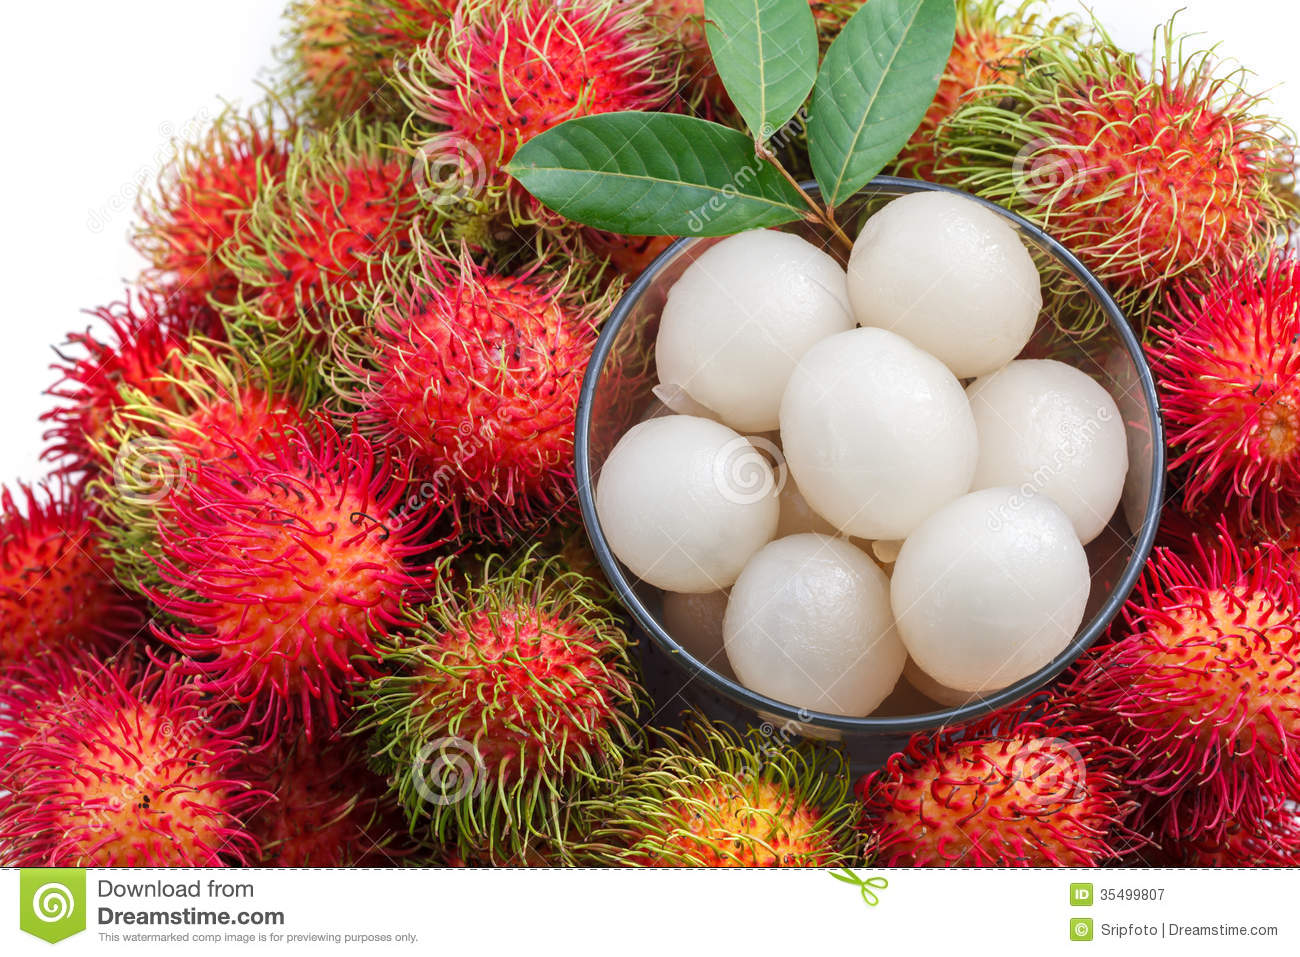 Rambutan Fruit Isolated Stock Image - Image: 24991041